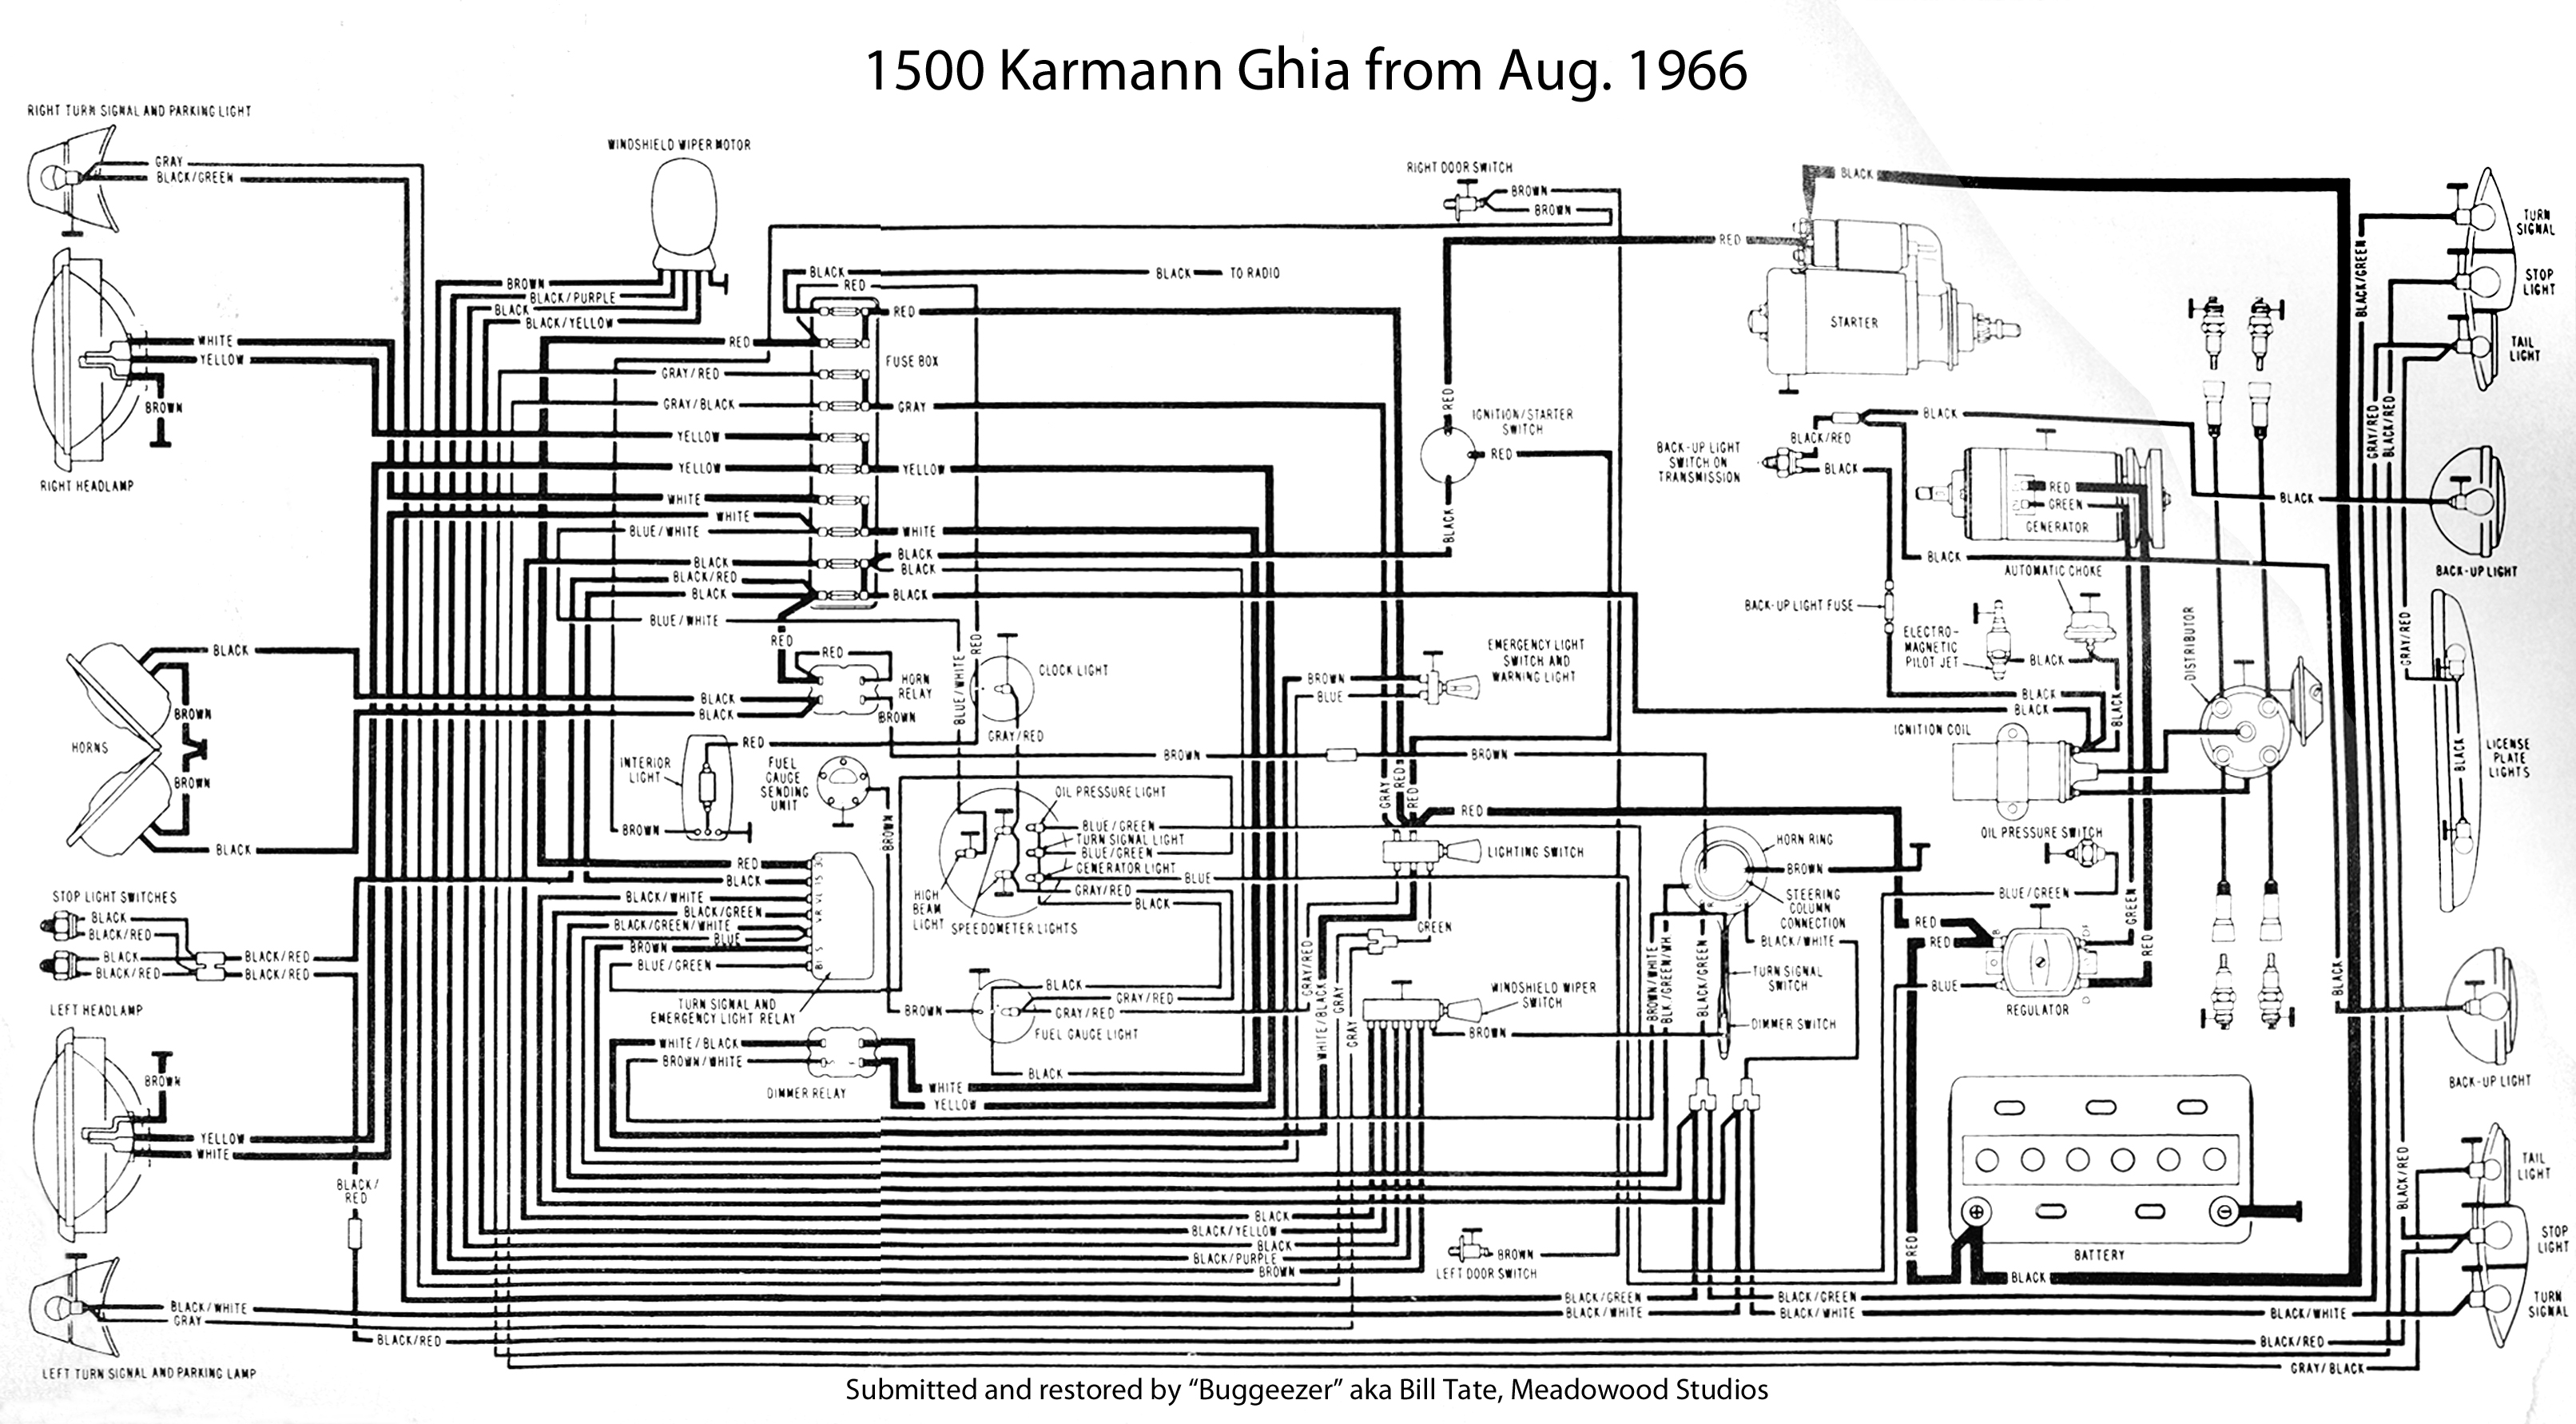 thesamba.com :: karmann ghia wiring diagrams 71 karmann ghia wiring diagram 1967 vw karmann ghia wiring diagram #14